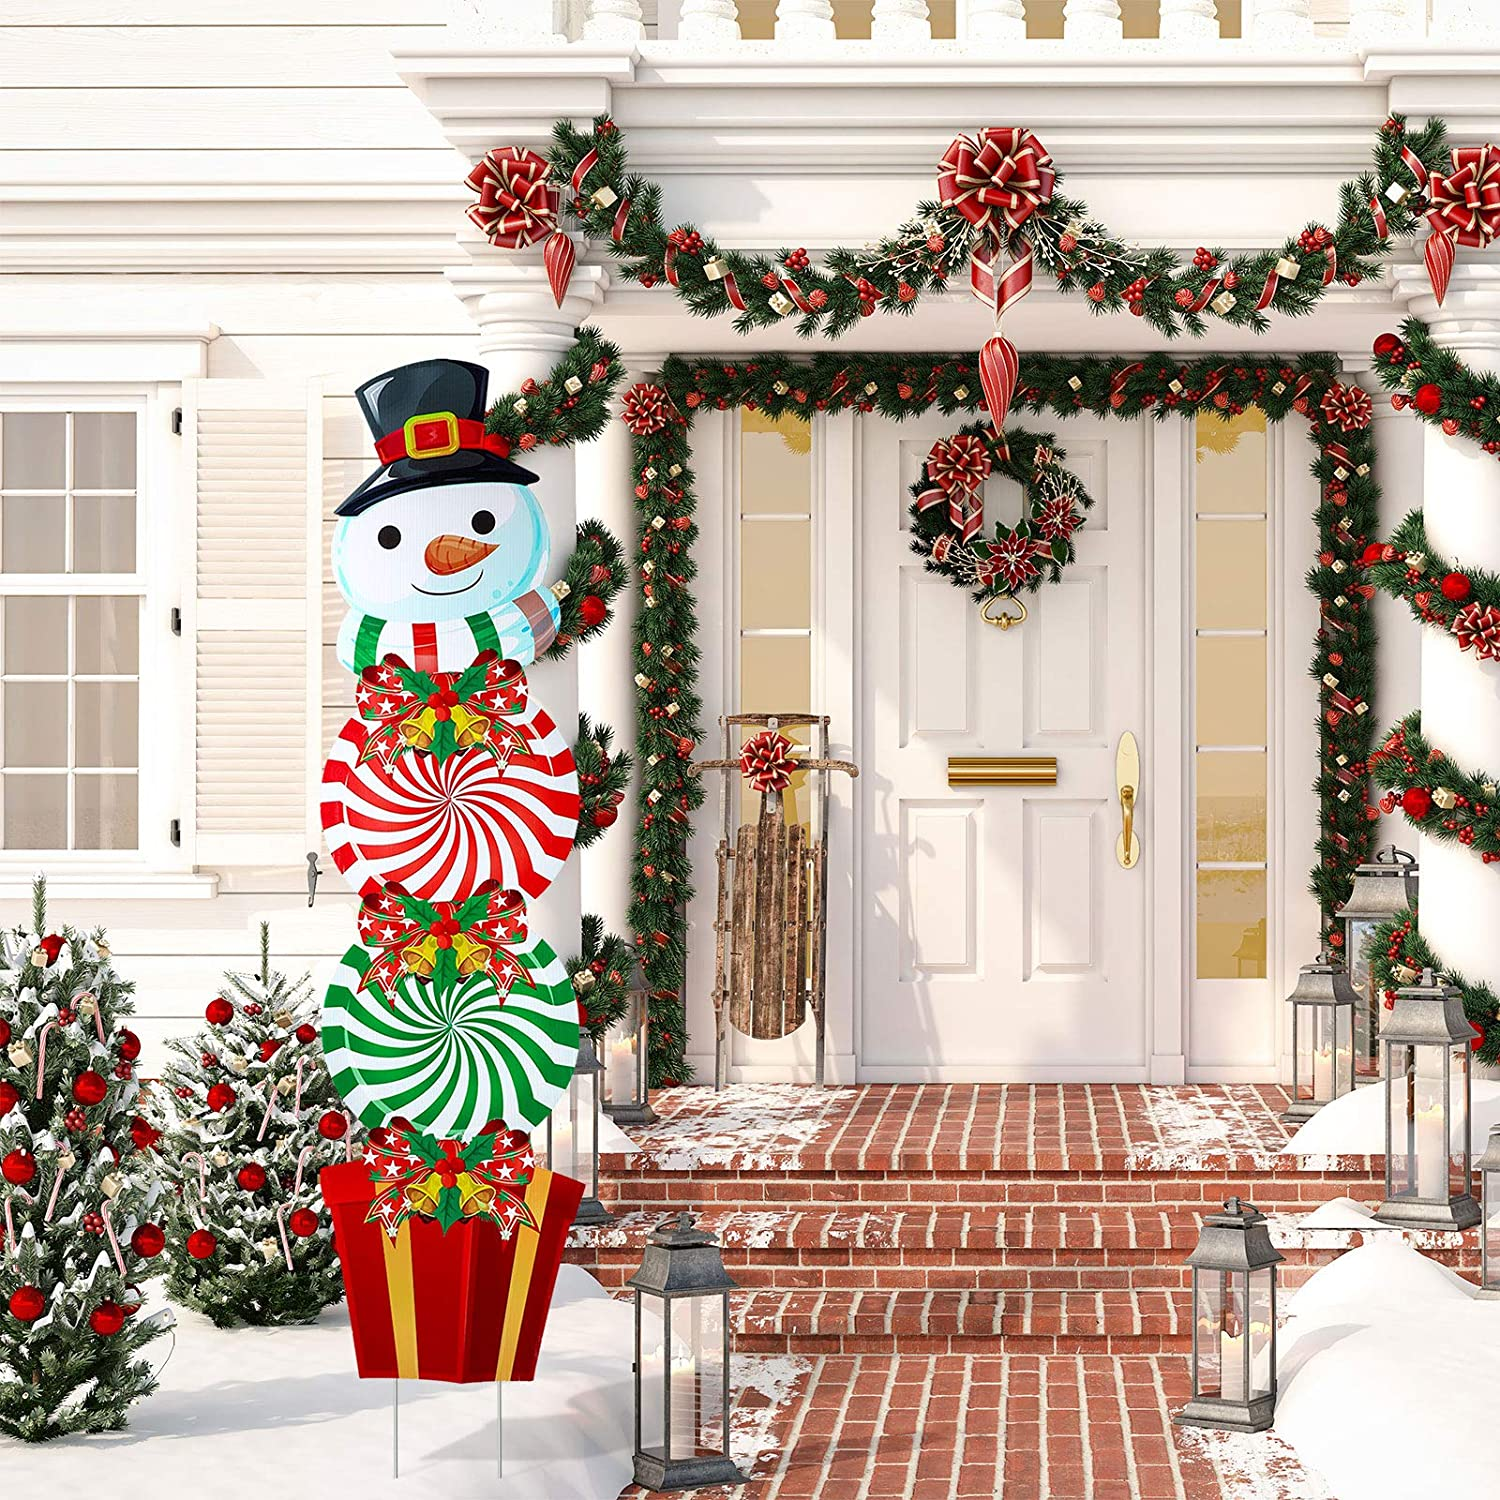 Christmas Yard Signs Stakes Decorations Xmas Snowman Plastic Yard Decor Outdoor Snowman Candy Garden Signs with Stakes for Outdoor Patio Winter Ornaments, 54 Inches